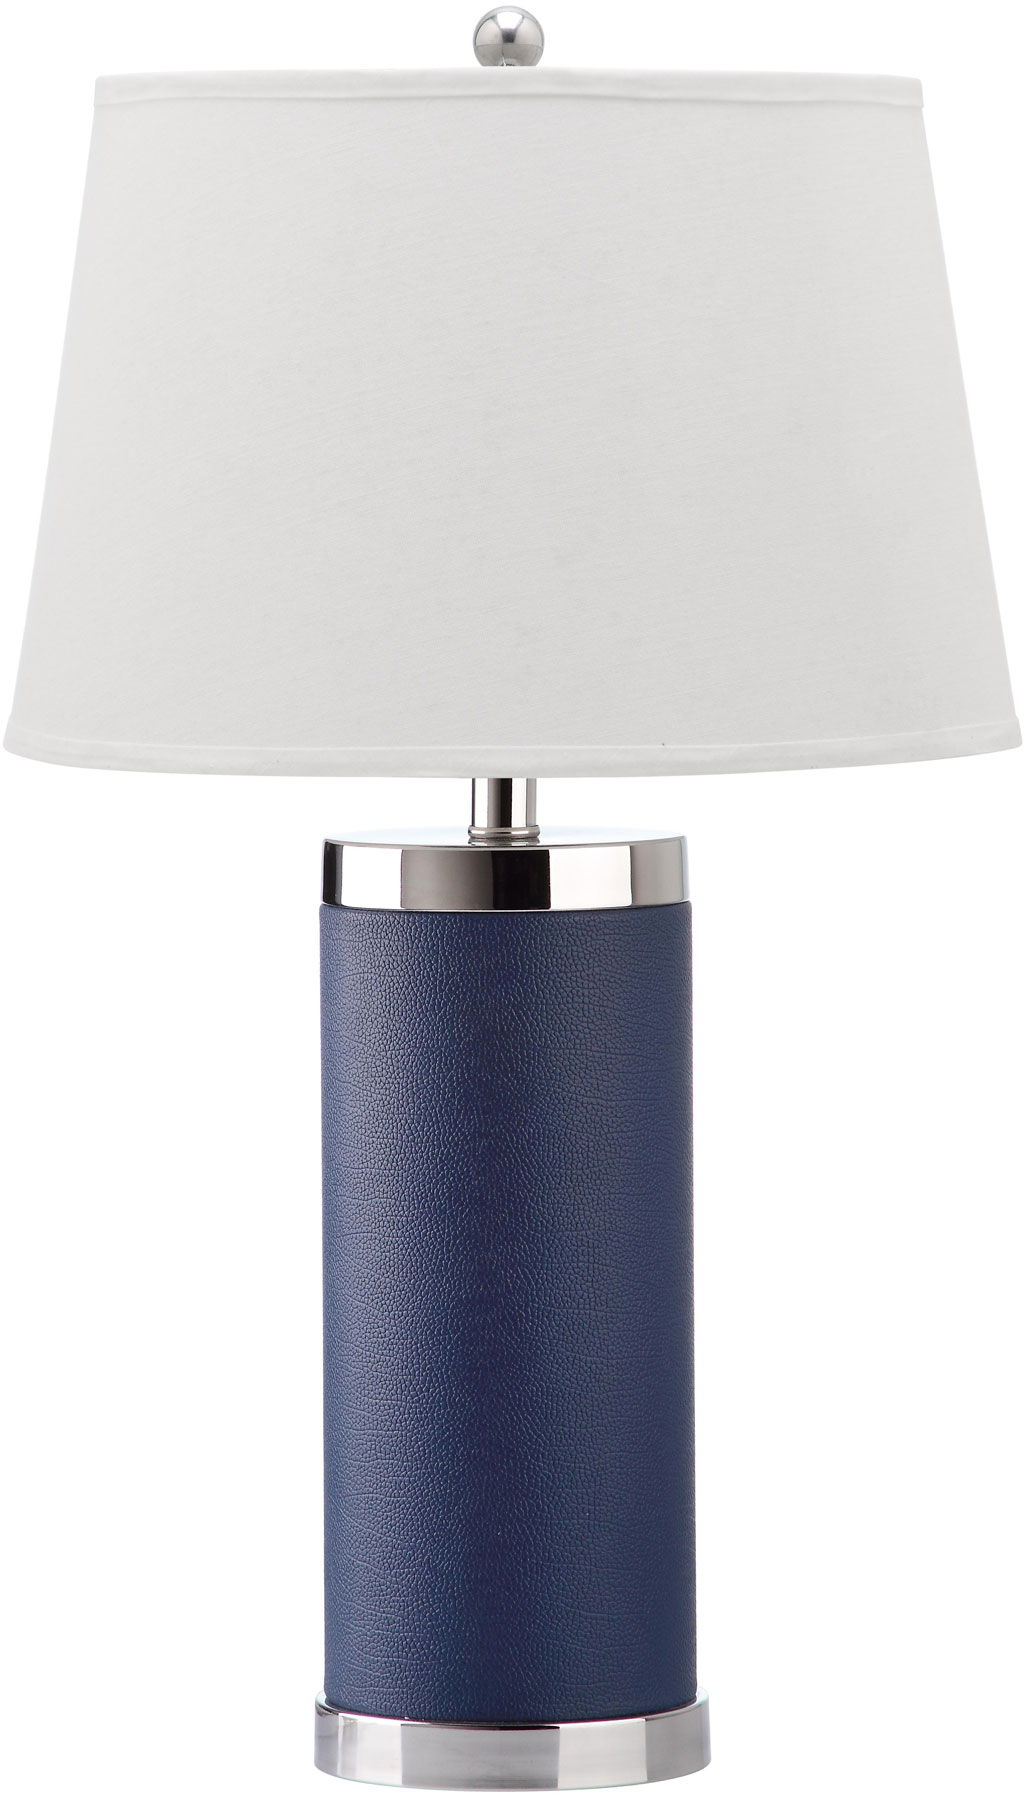 navy table lamp acrylic leather column table lamp design lit4144aset2 table lamps lighting by safavieh